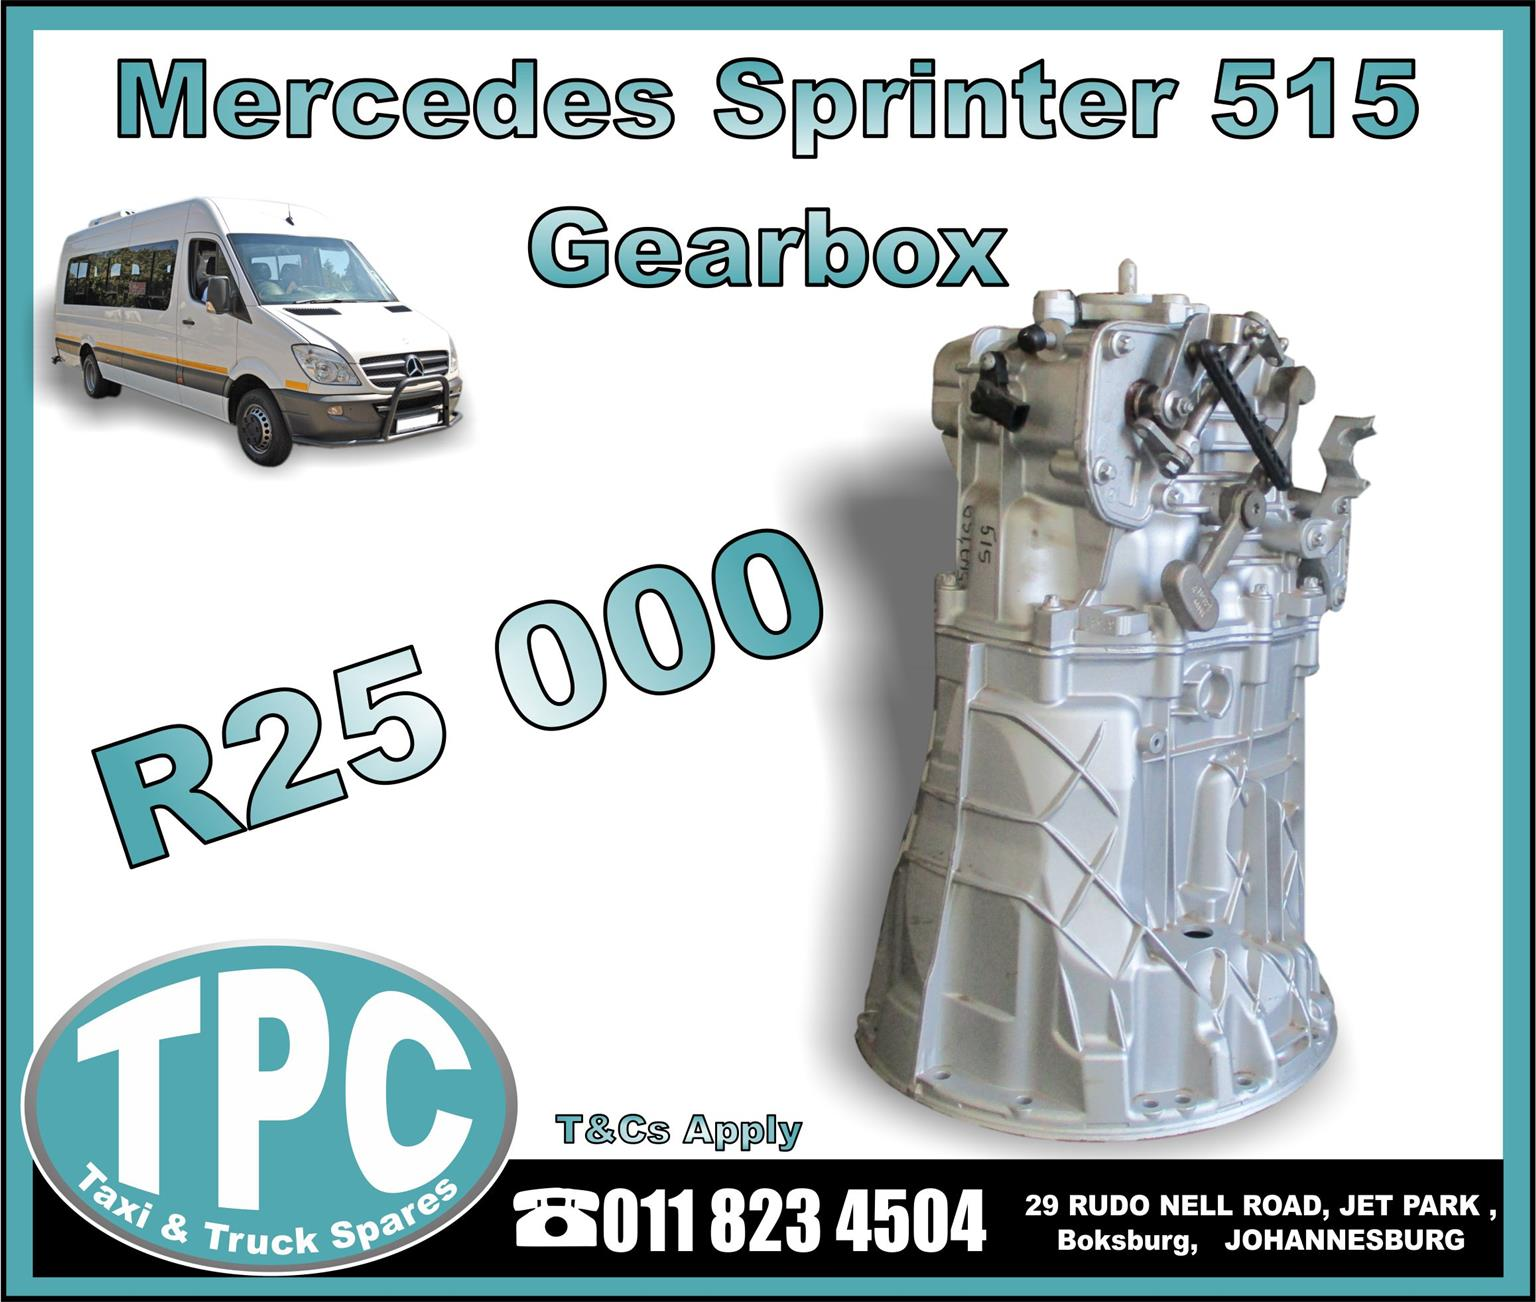 Mercedes Sprinter 515 Gearbox - Used - New And Used Quality Replacement Taxi Spare Parts -TPC.